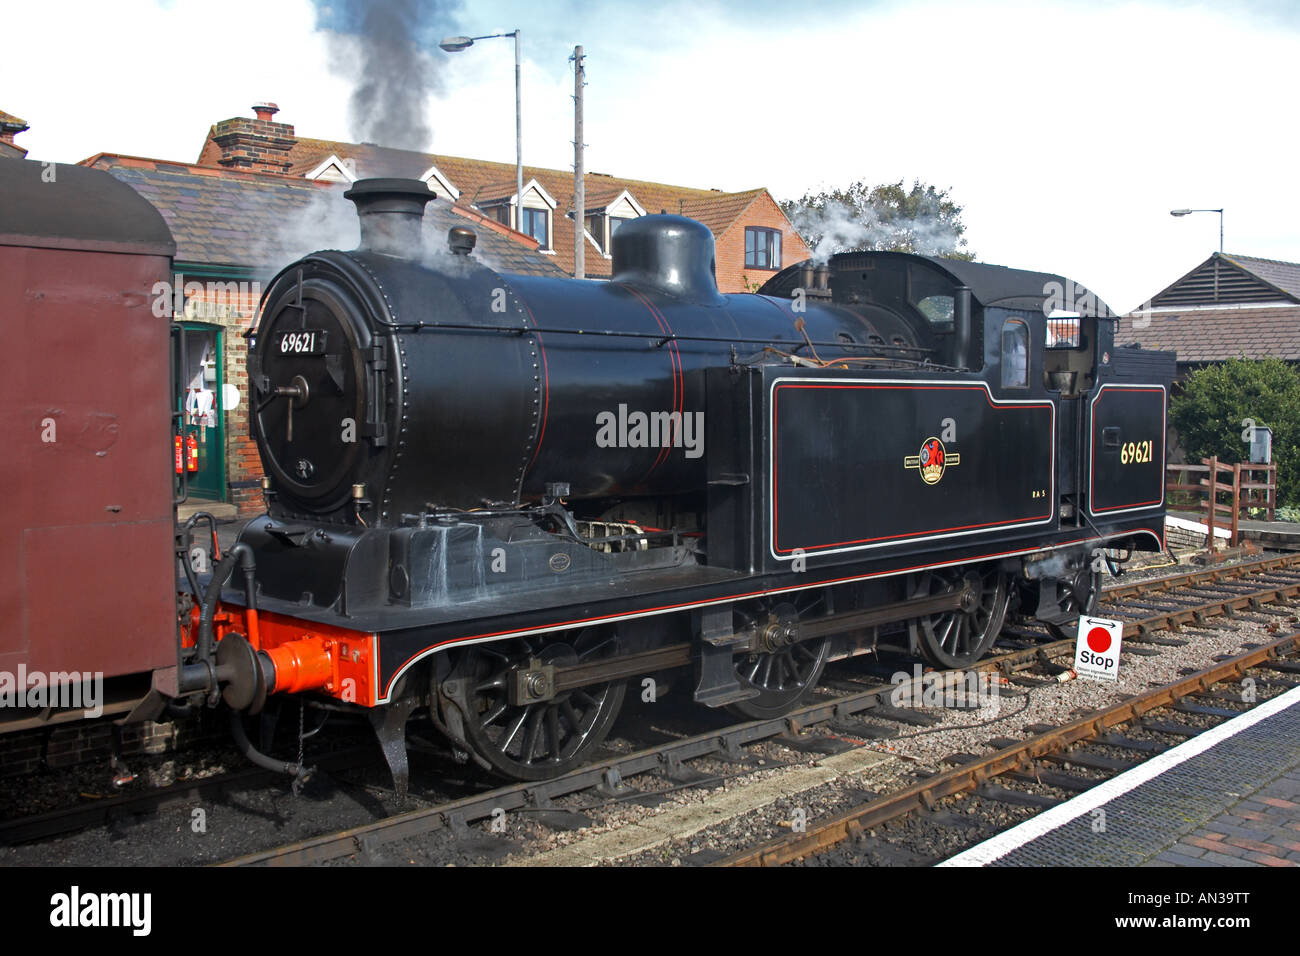 Stean locomotive British Rail number 69621 0-6-2 tank engine Stock ...